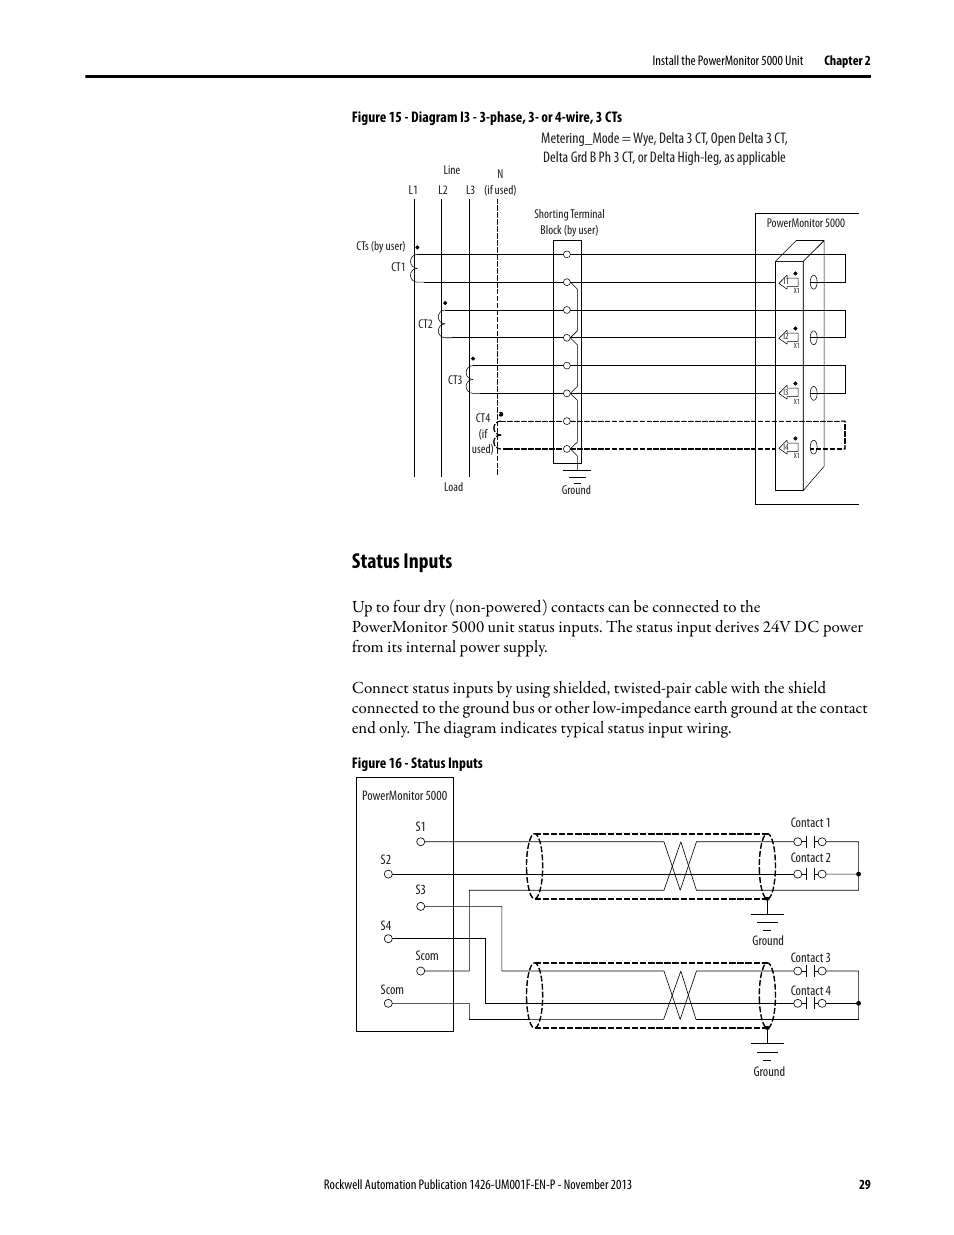 hight resolution of status inputs rockwell automation 1426 powermonitor 5000 unit user manual page 29 396